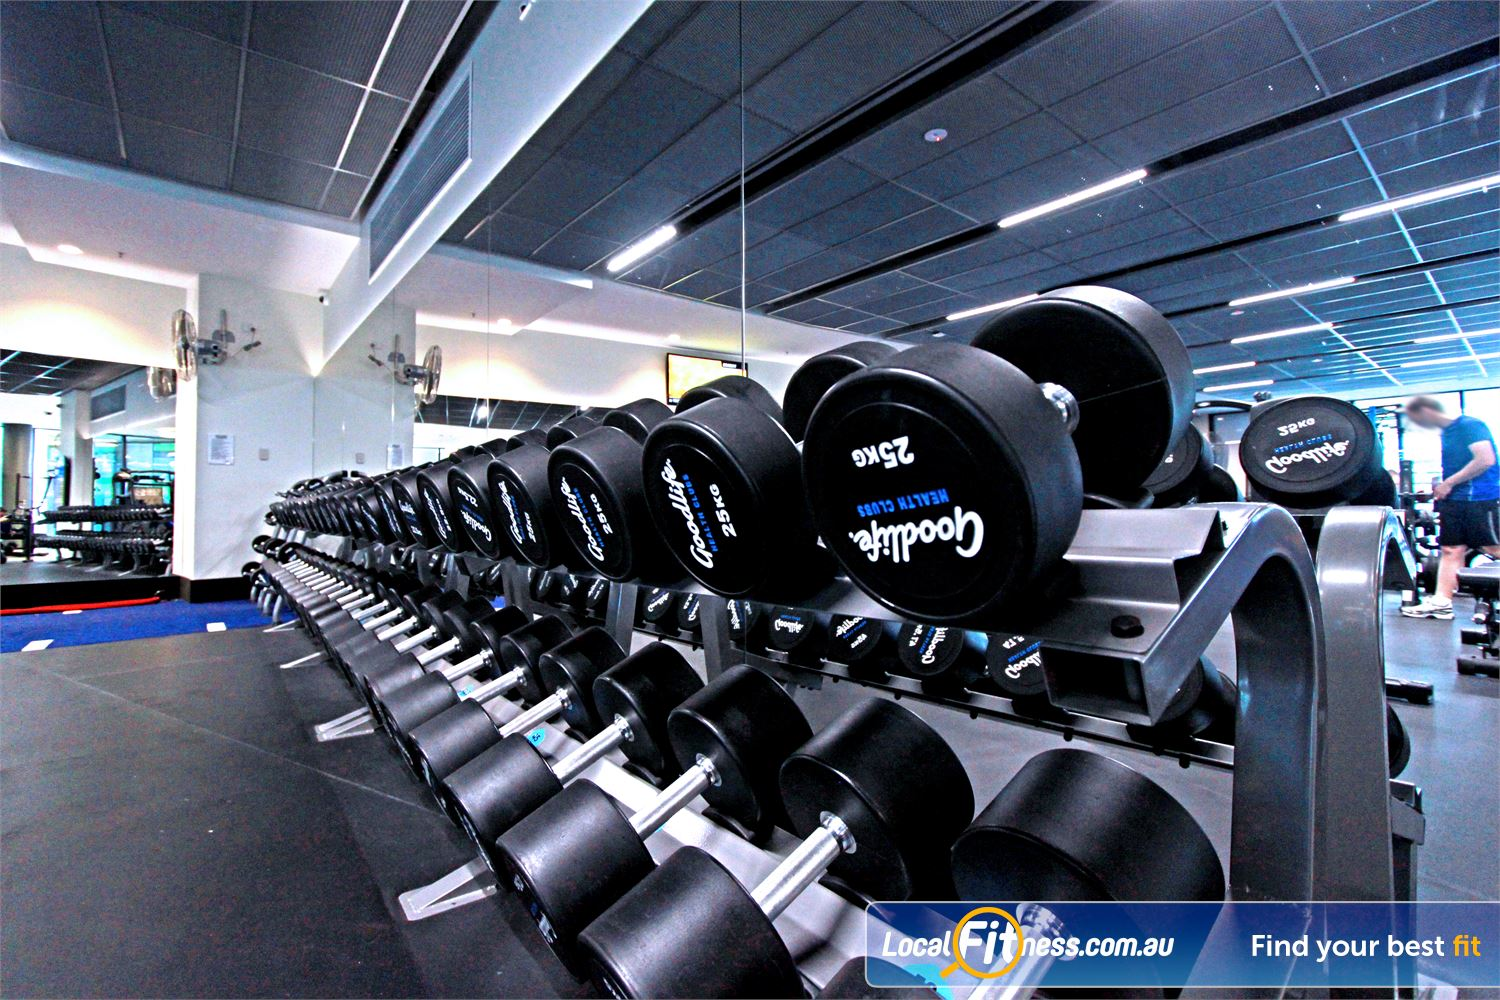 Goodlife Health Clubs Near South Melbourne The free-weights area is fully equipped with barbells, dumbbells, benches and more.